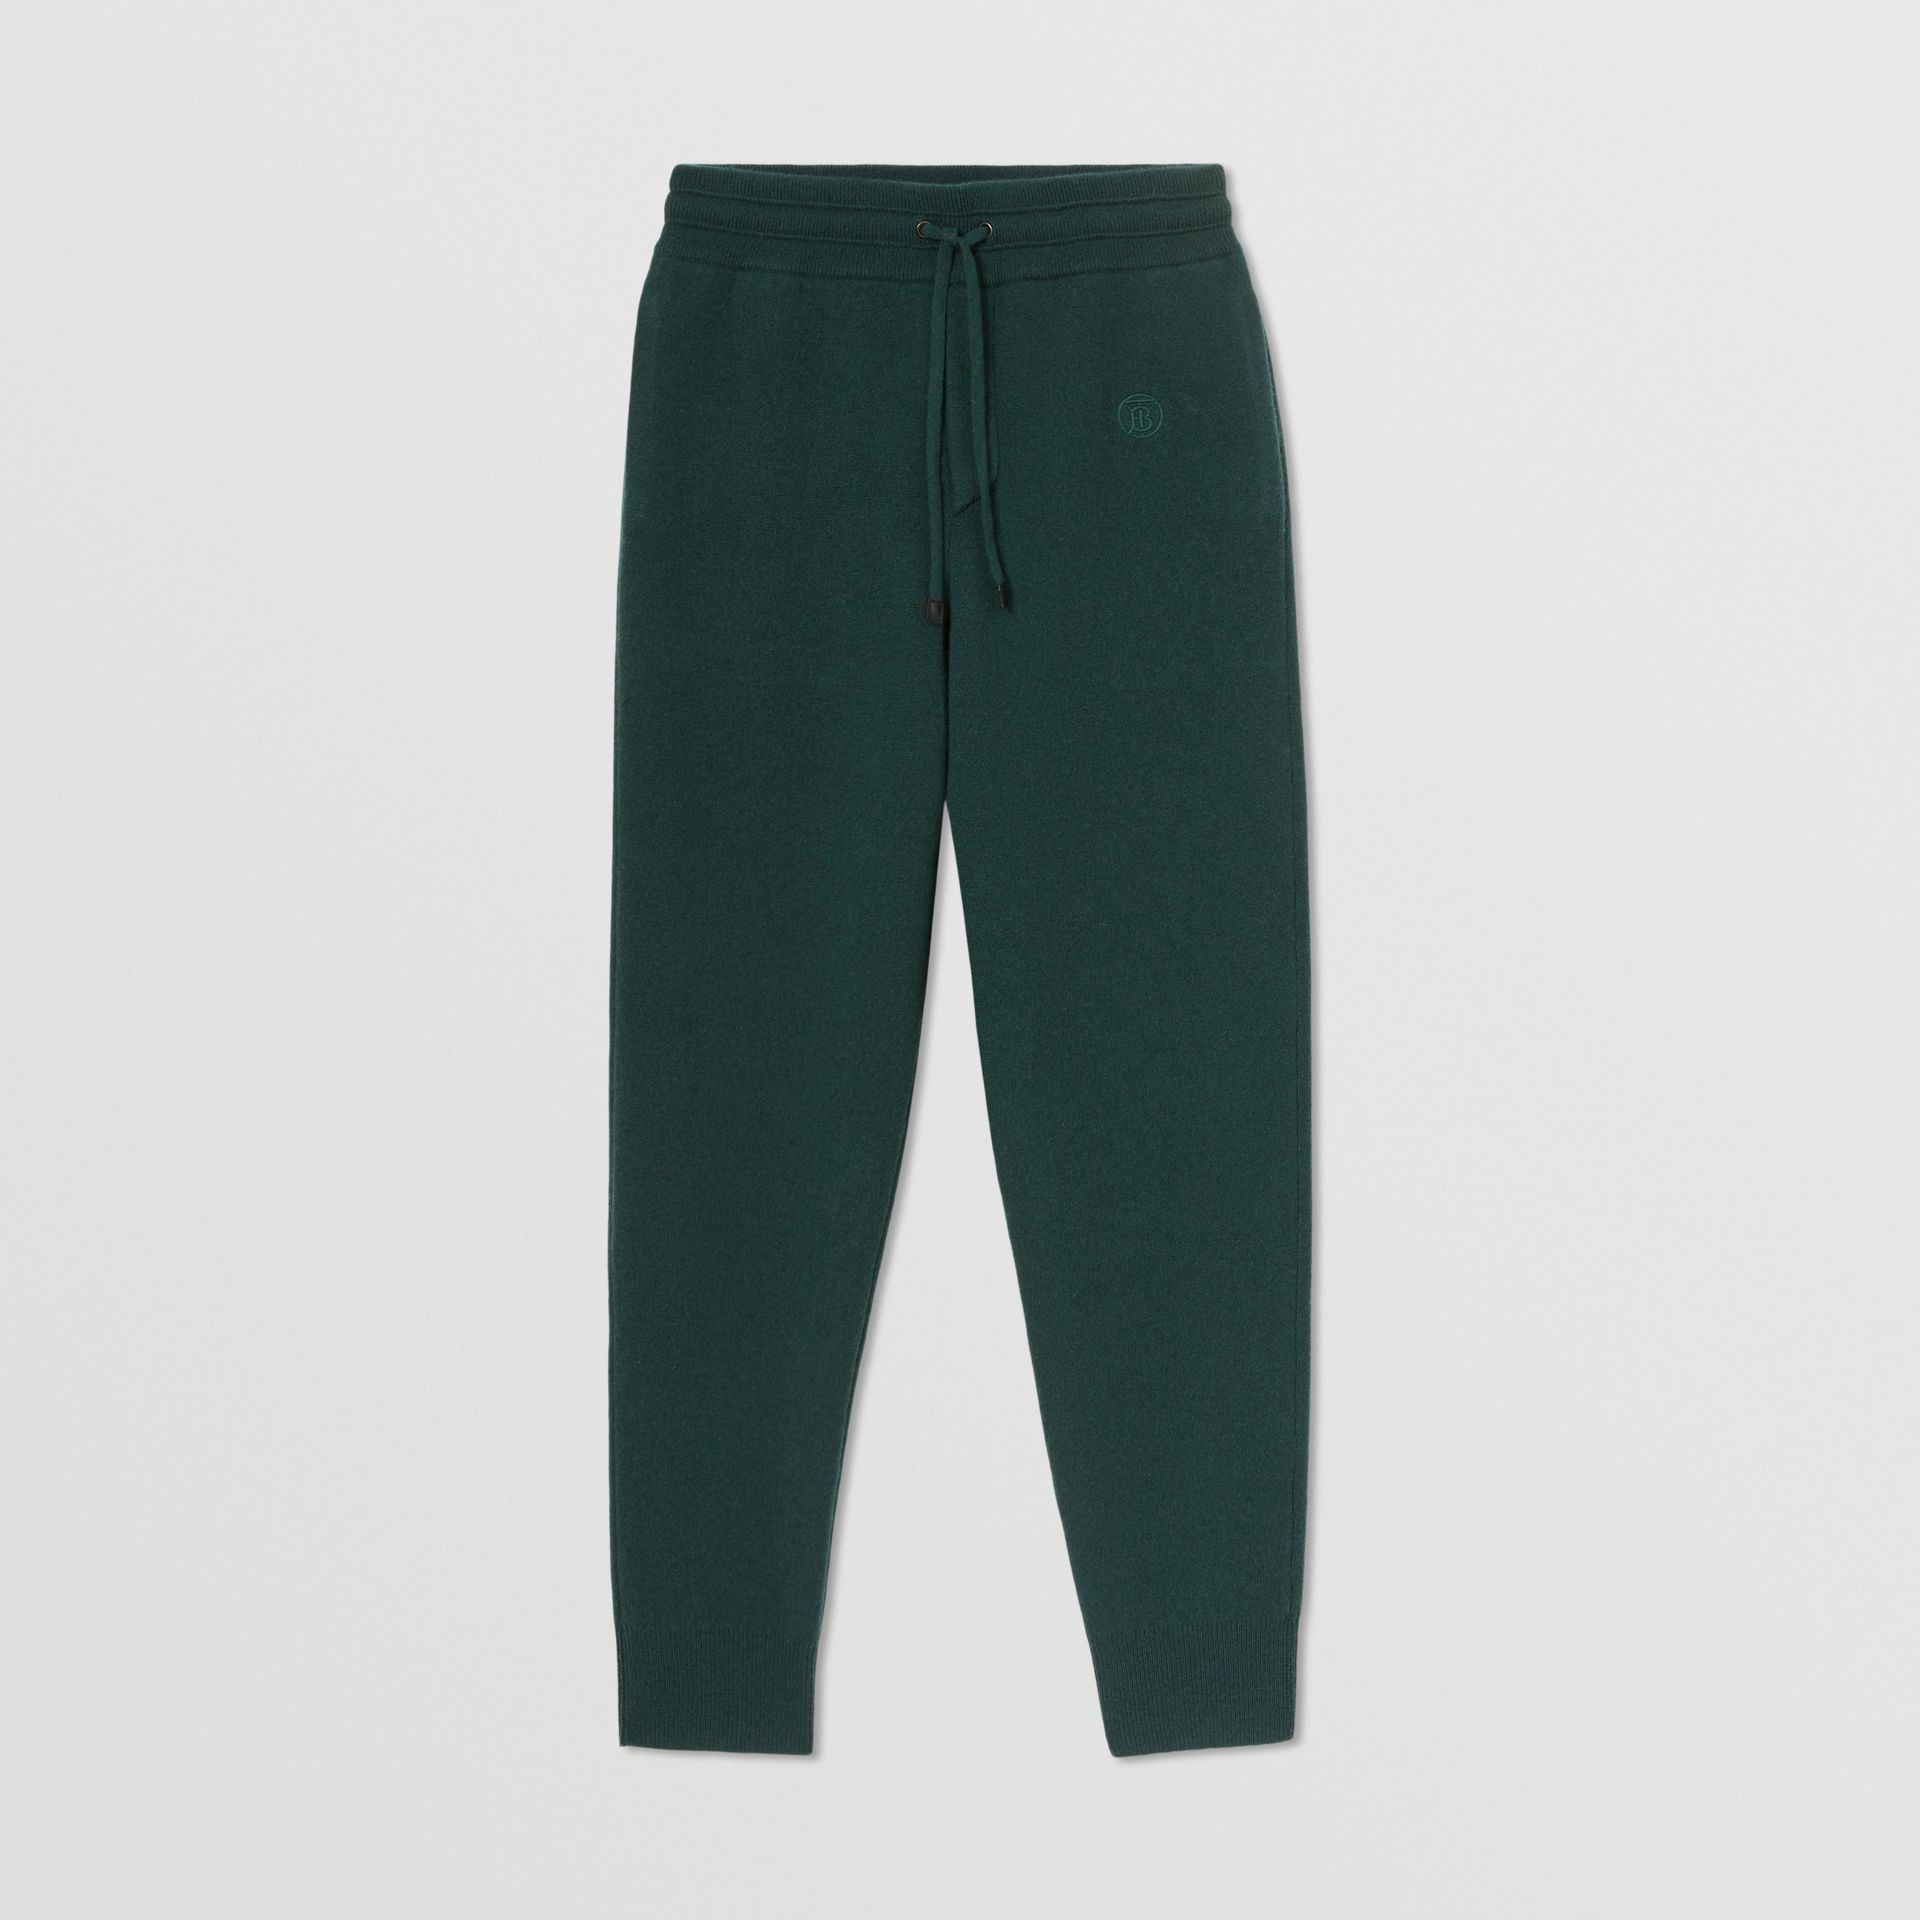 Monogram Motif Cashmere Blend Jogging Pants in Bottle Green - Women | Burberry - gallery image 3